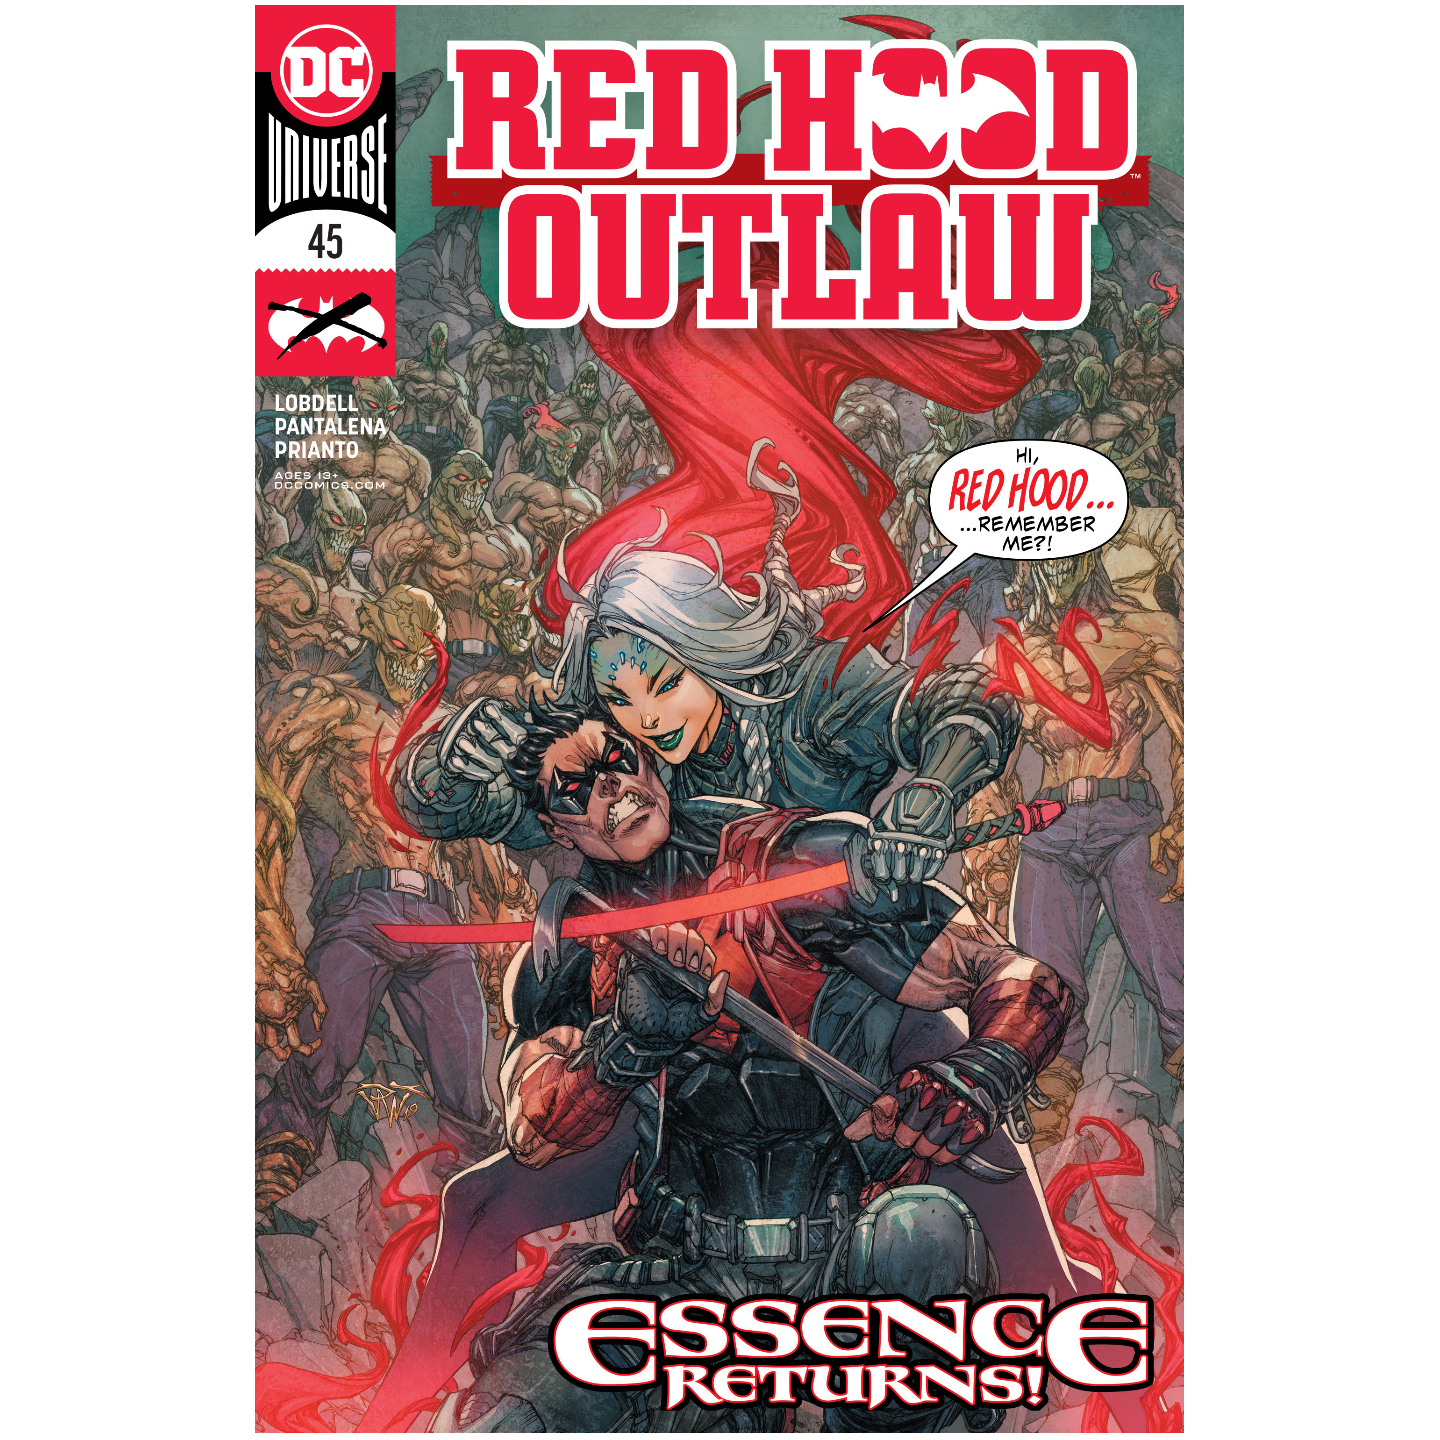 RED HOOD OUTLAW 45